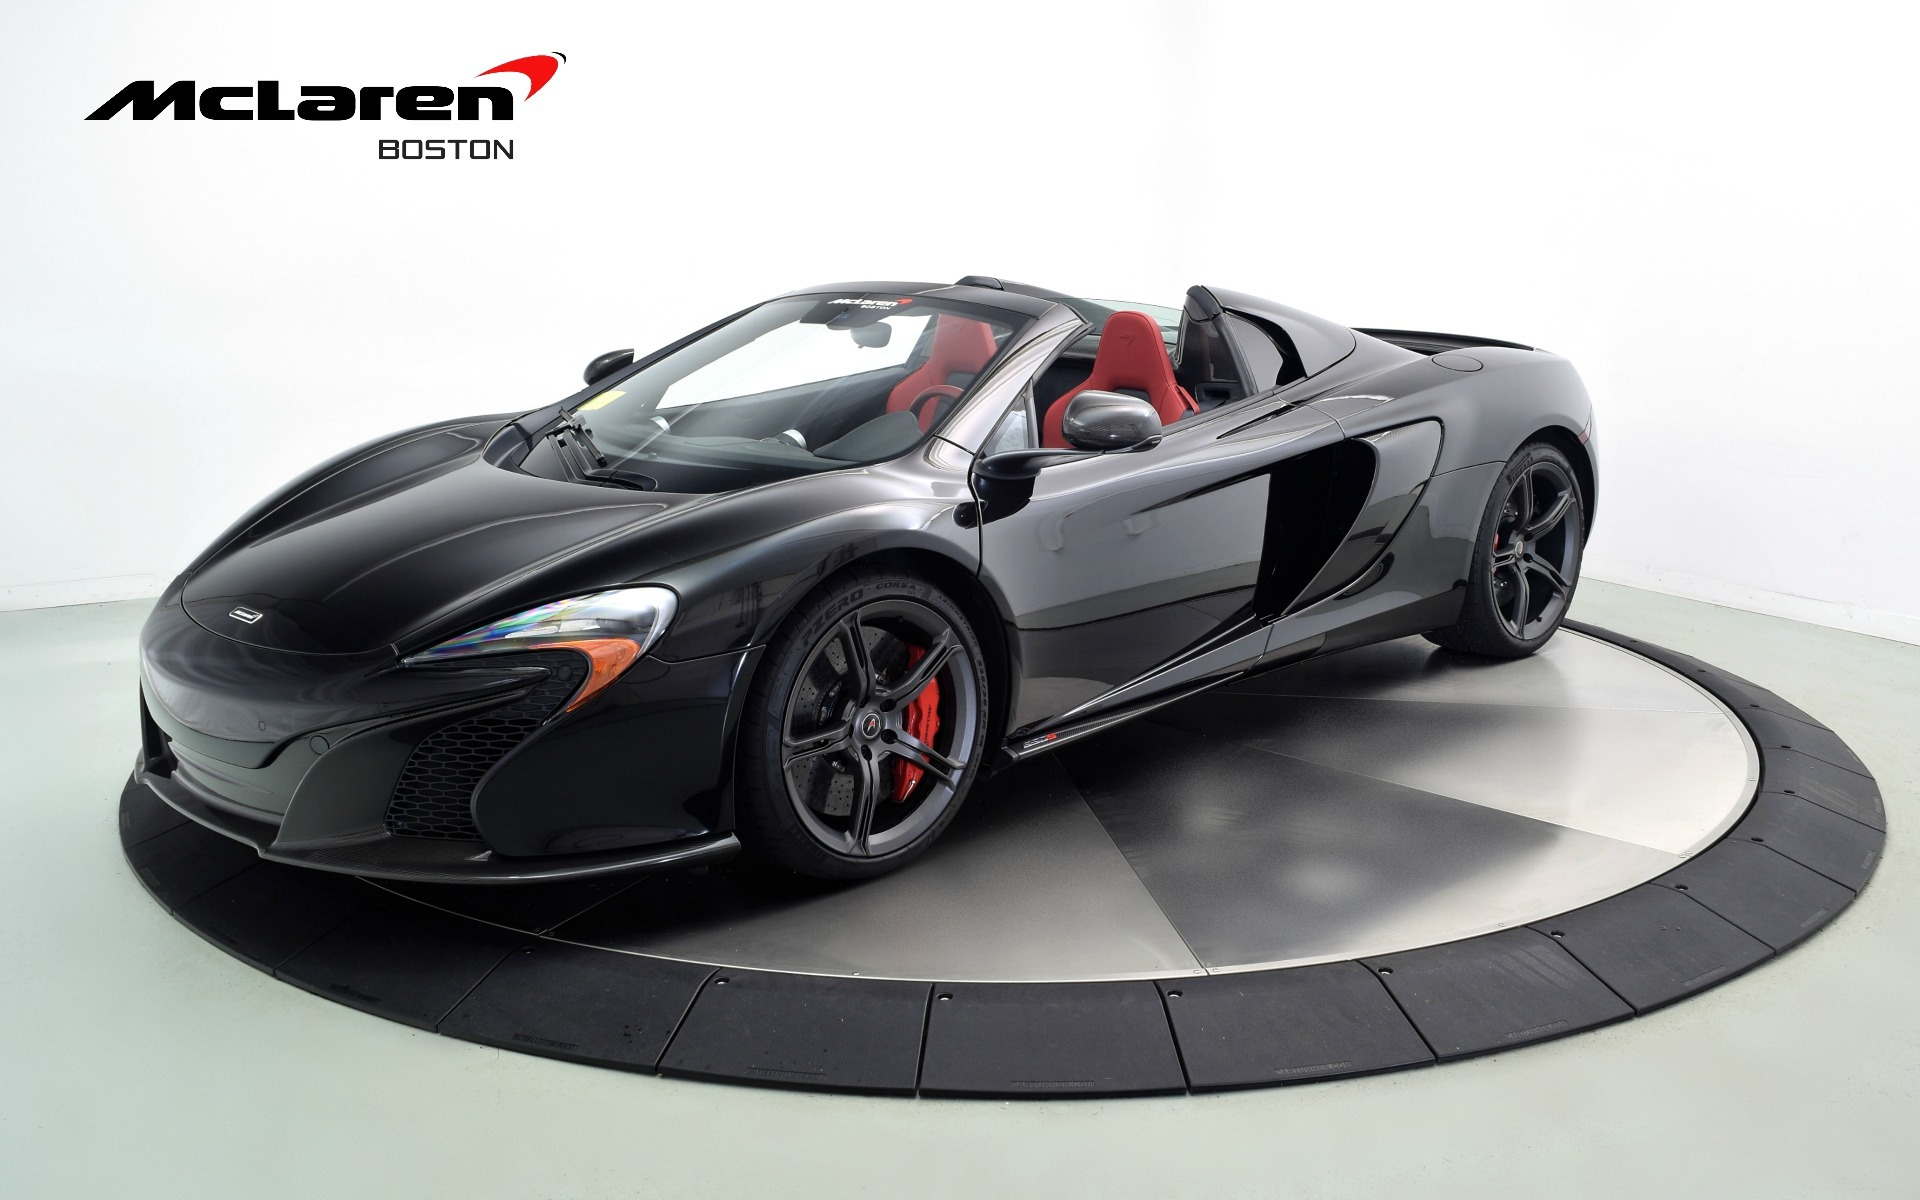 2016 mclaren 650s spider for sale in norwell ma 006076 mclaren boston. Black Bedroom Furniture Sets. Home Design Ideas